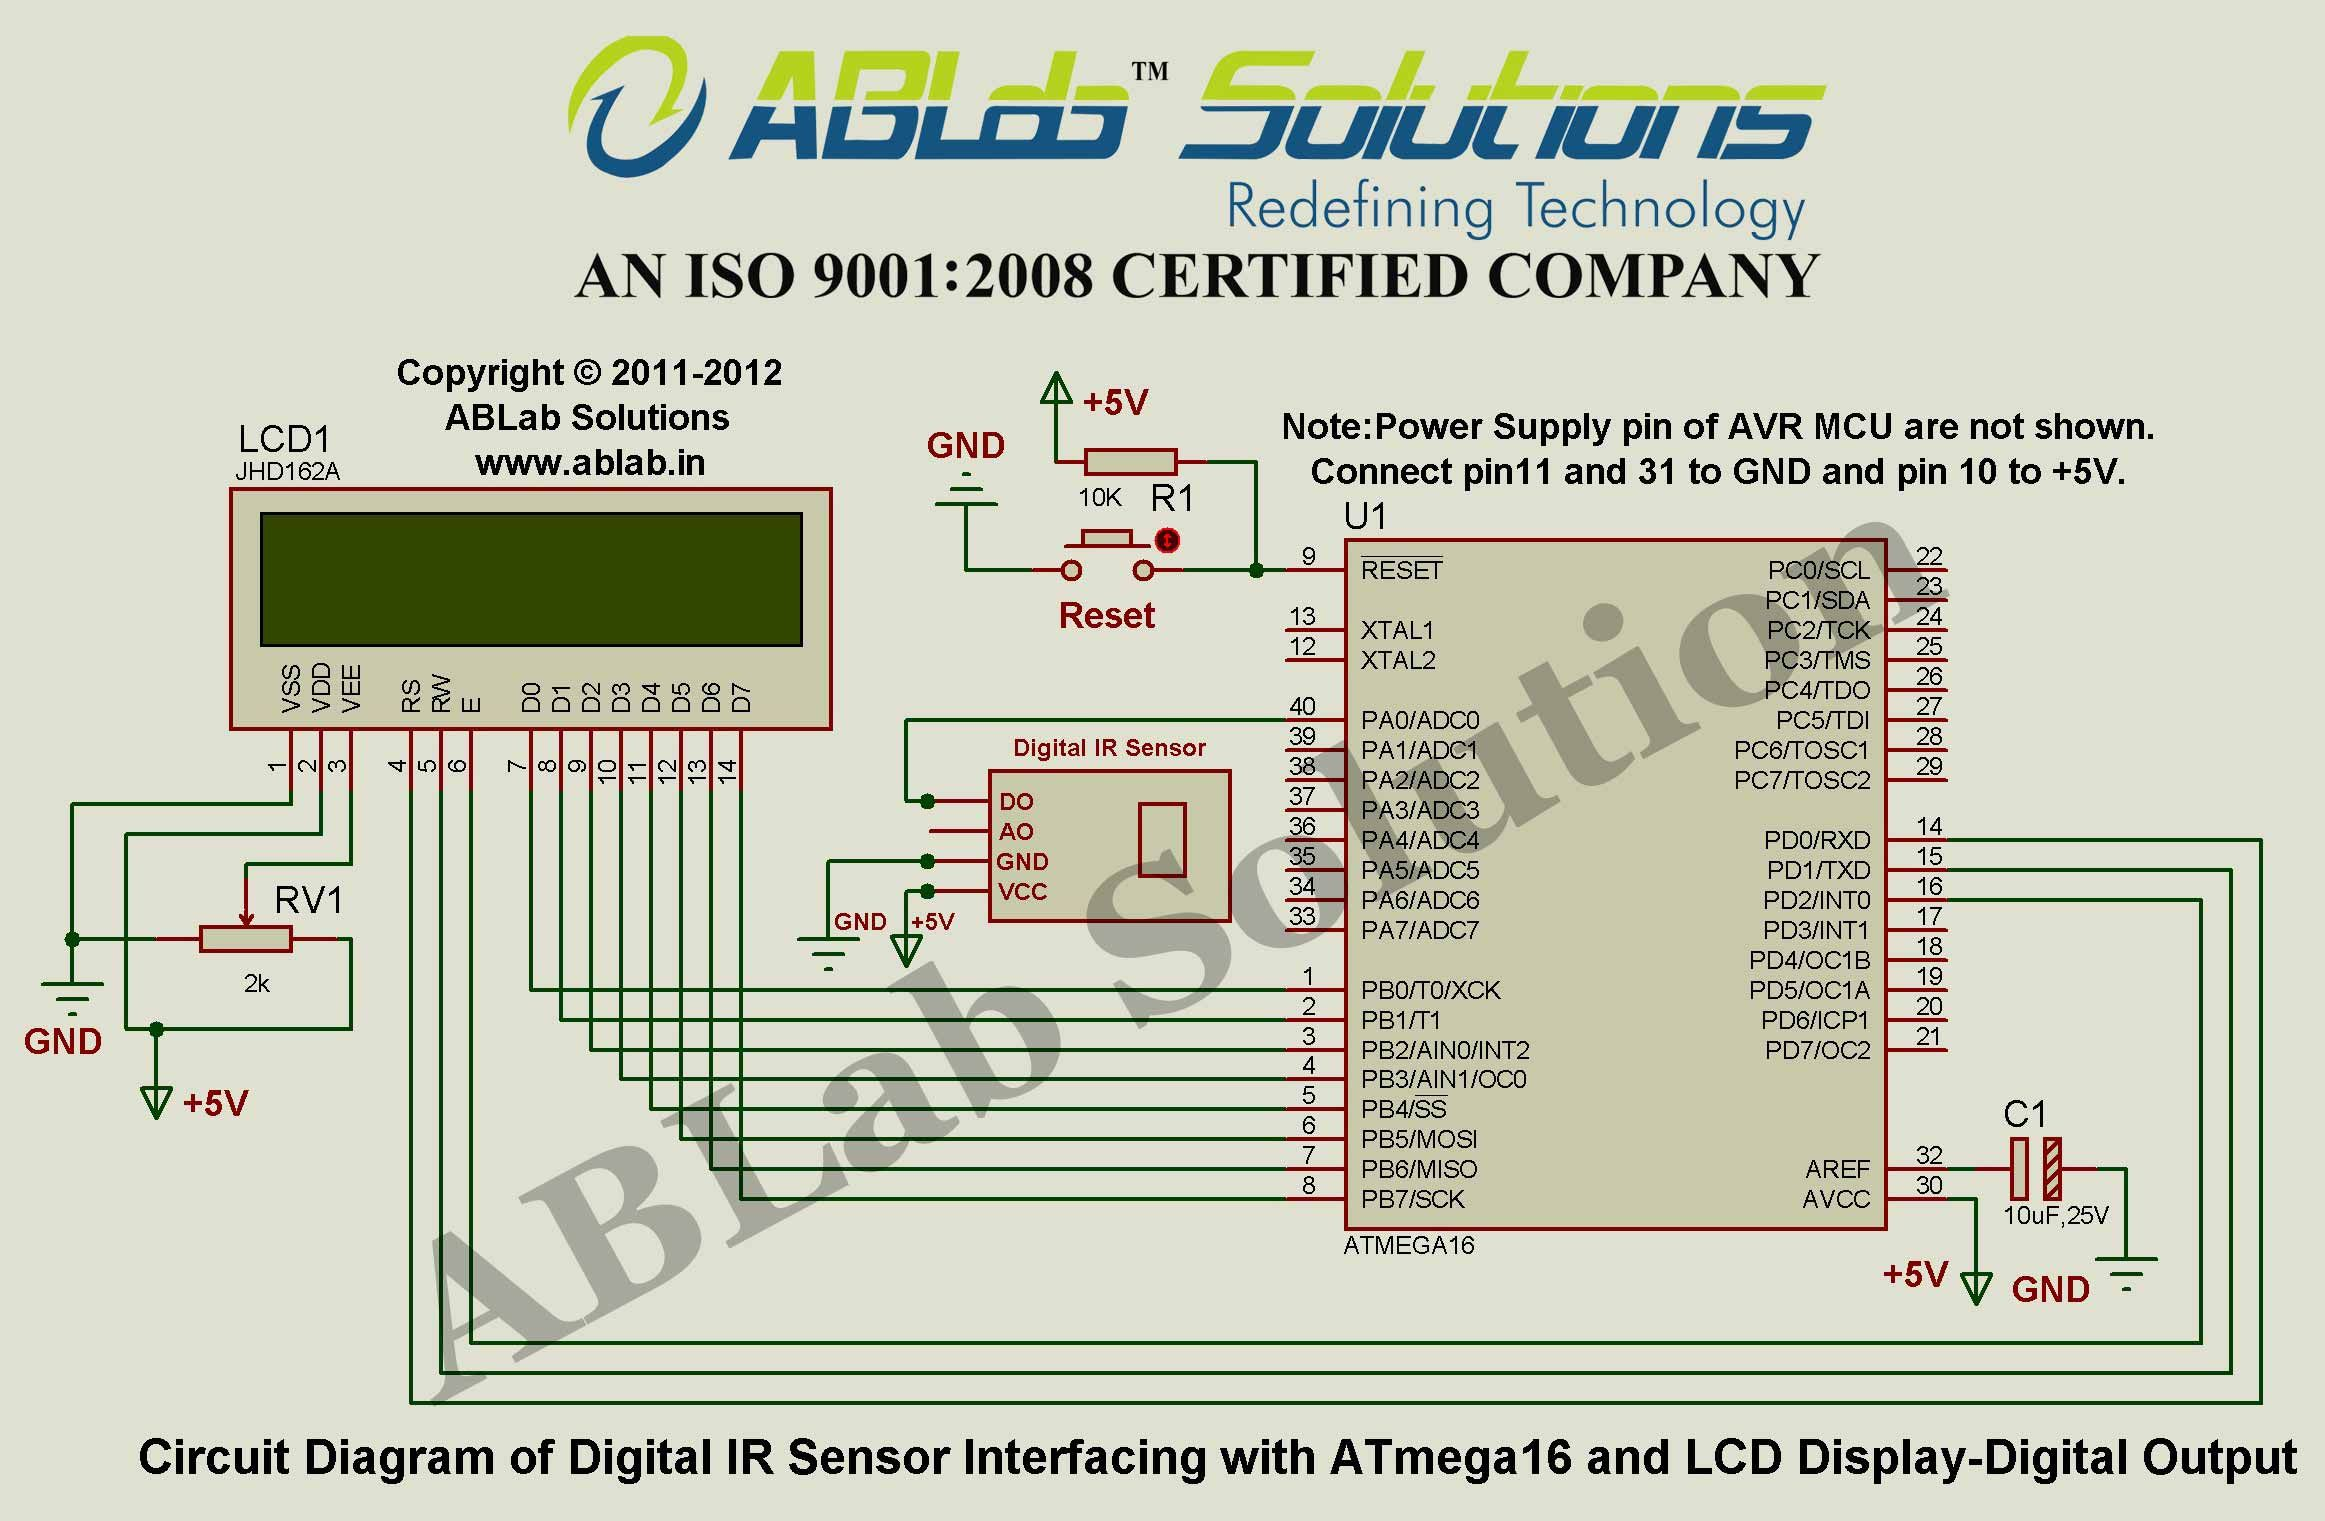 digital ir sensor interfacing with avr atmega16 microcontroller and lcd display digital output circuit diagram ablab solutions [ 2325 x 1521 Pixel ]